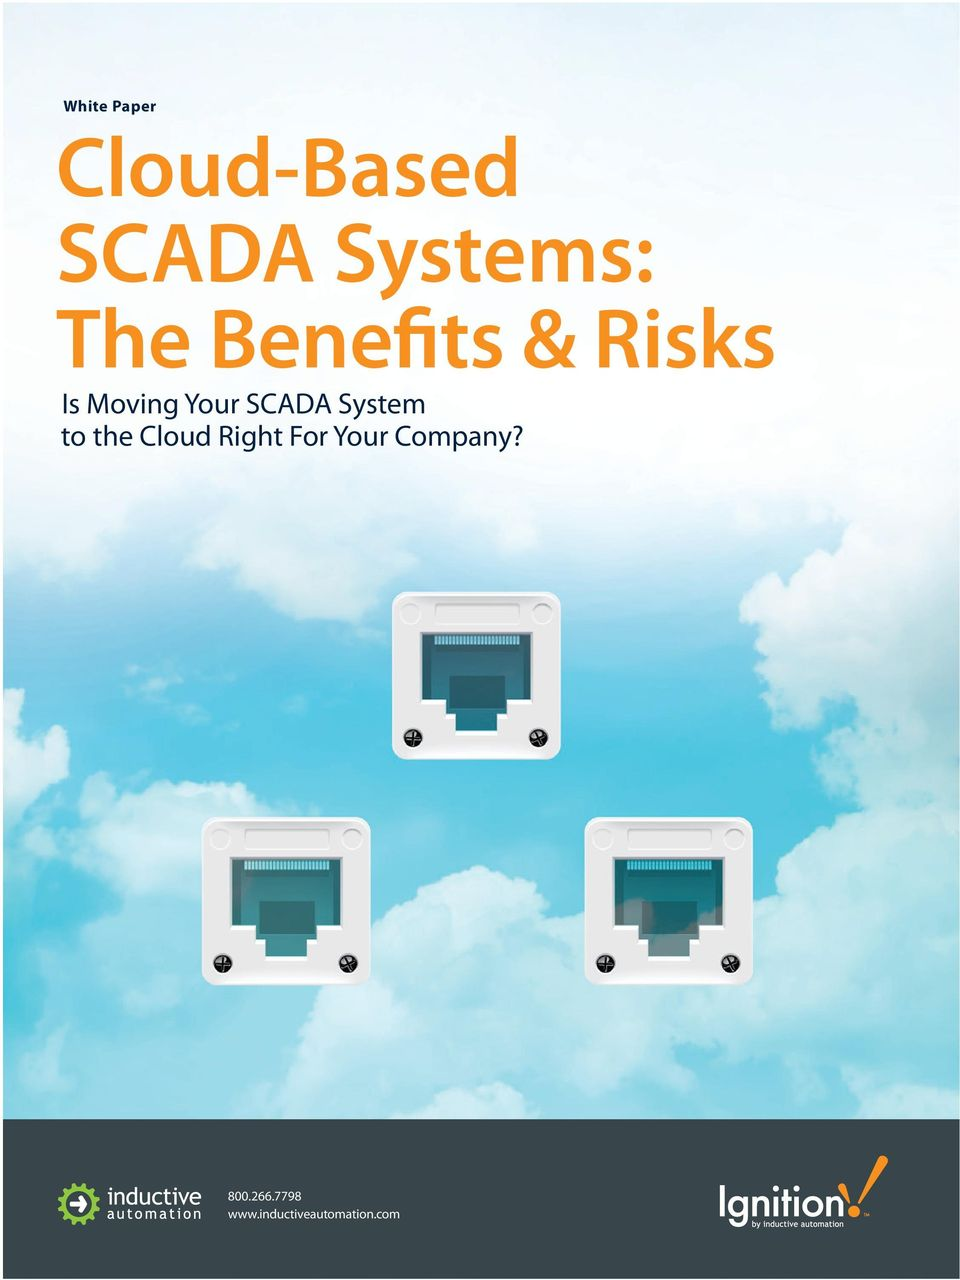 Is Moving Your SCADA System to